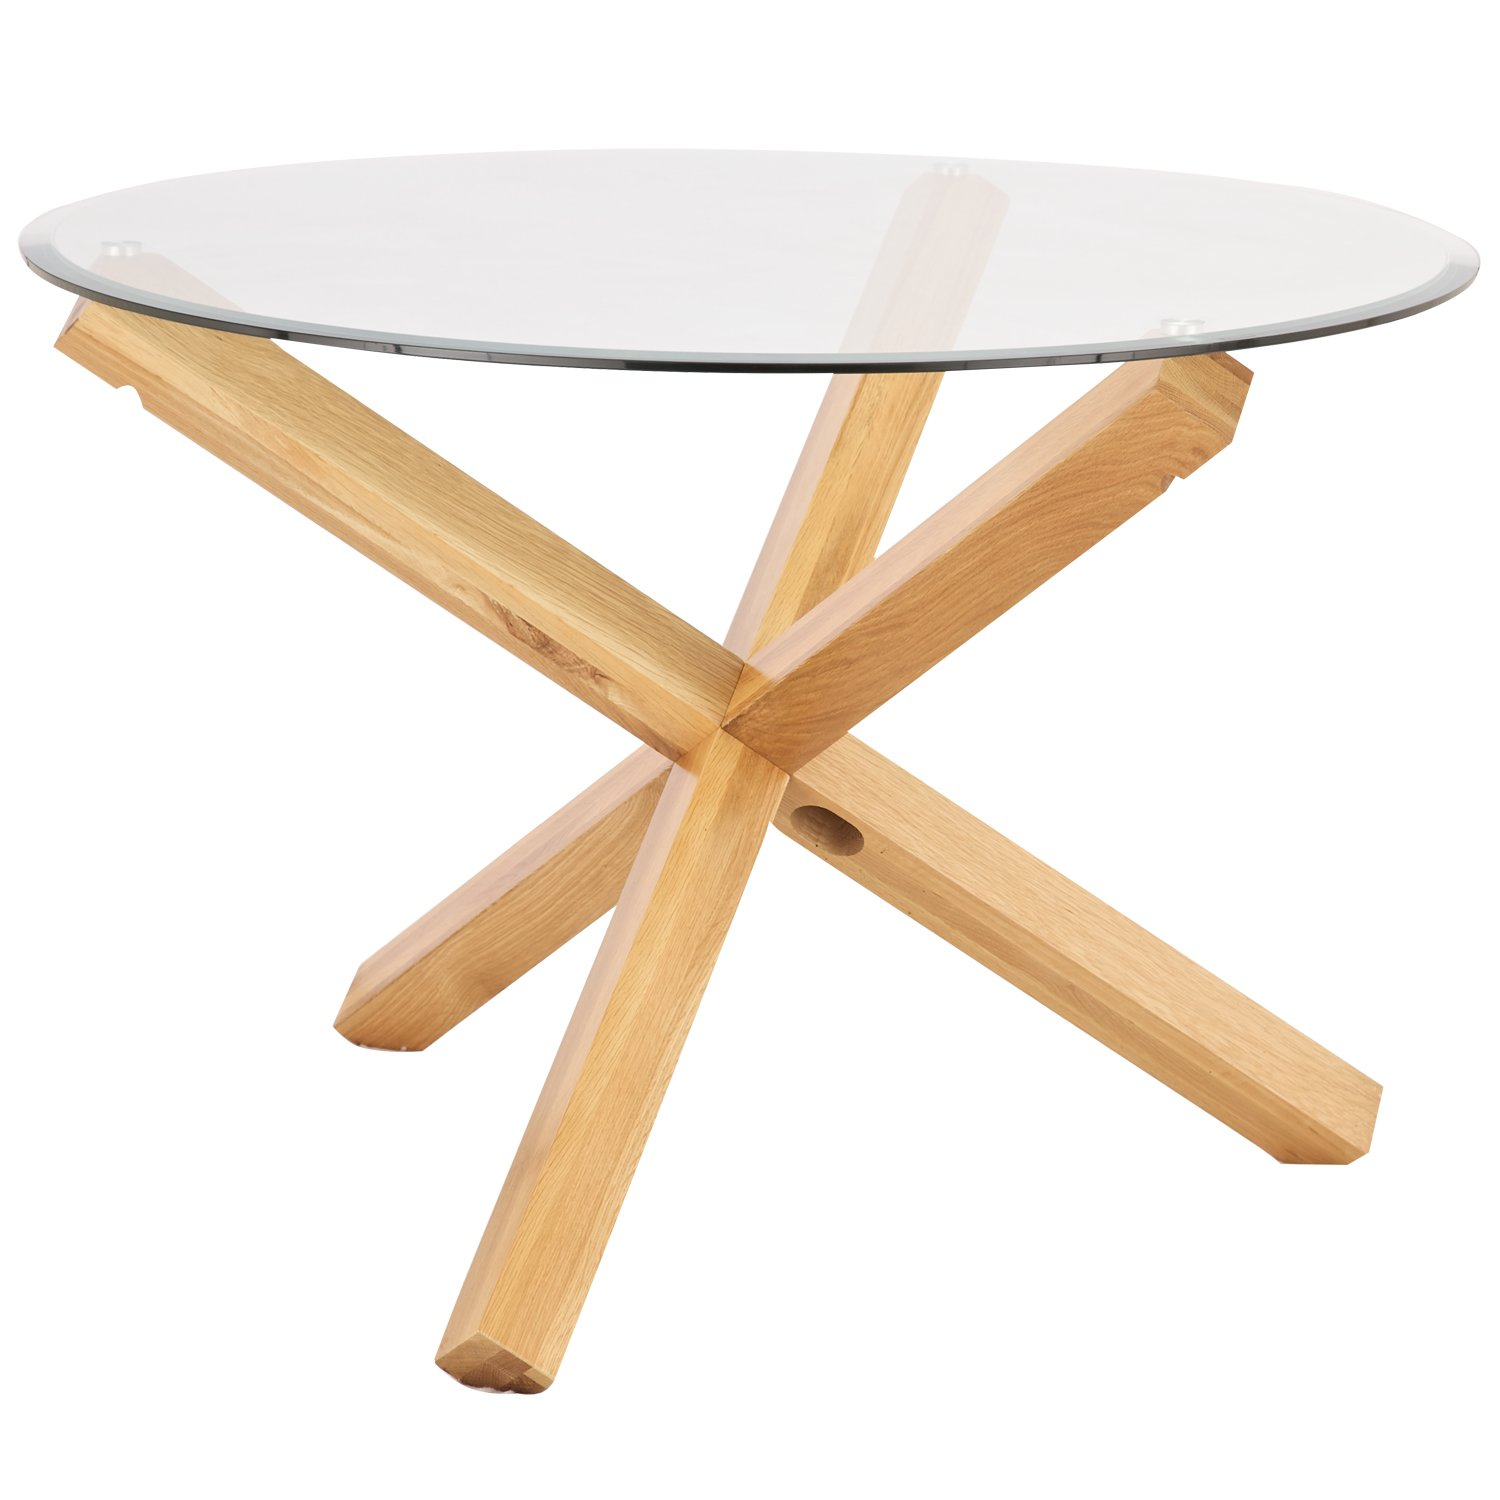 Oporto Glass Topped Round Tables   Dining, Coffee, End: Amazon.co.uk:  Kitchen U0026 Home